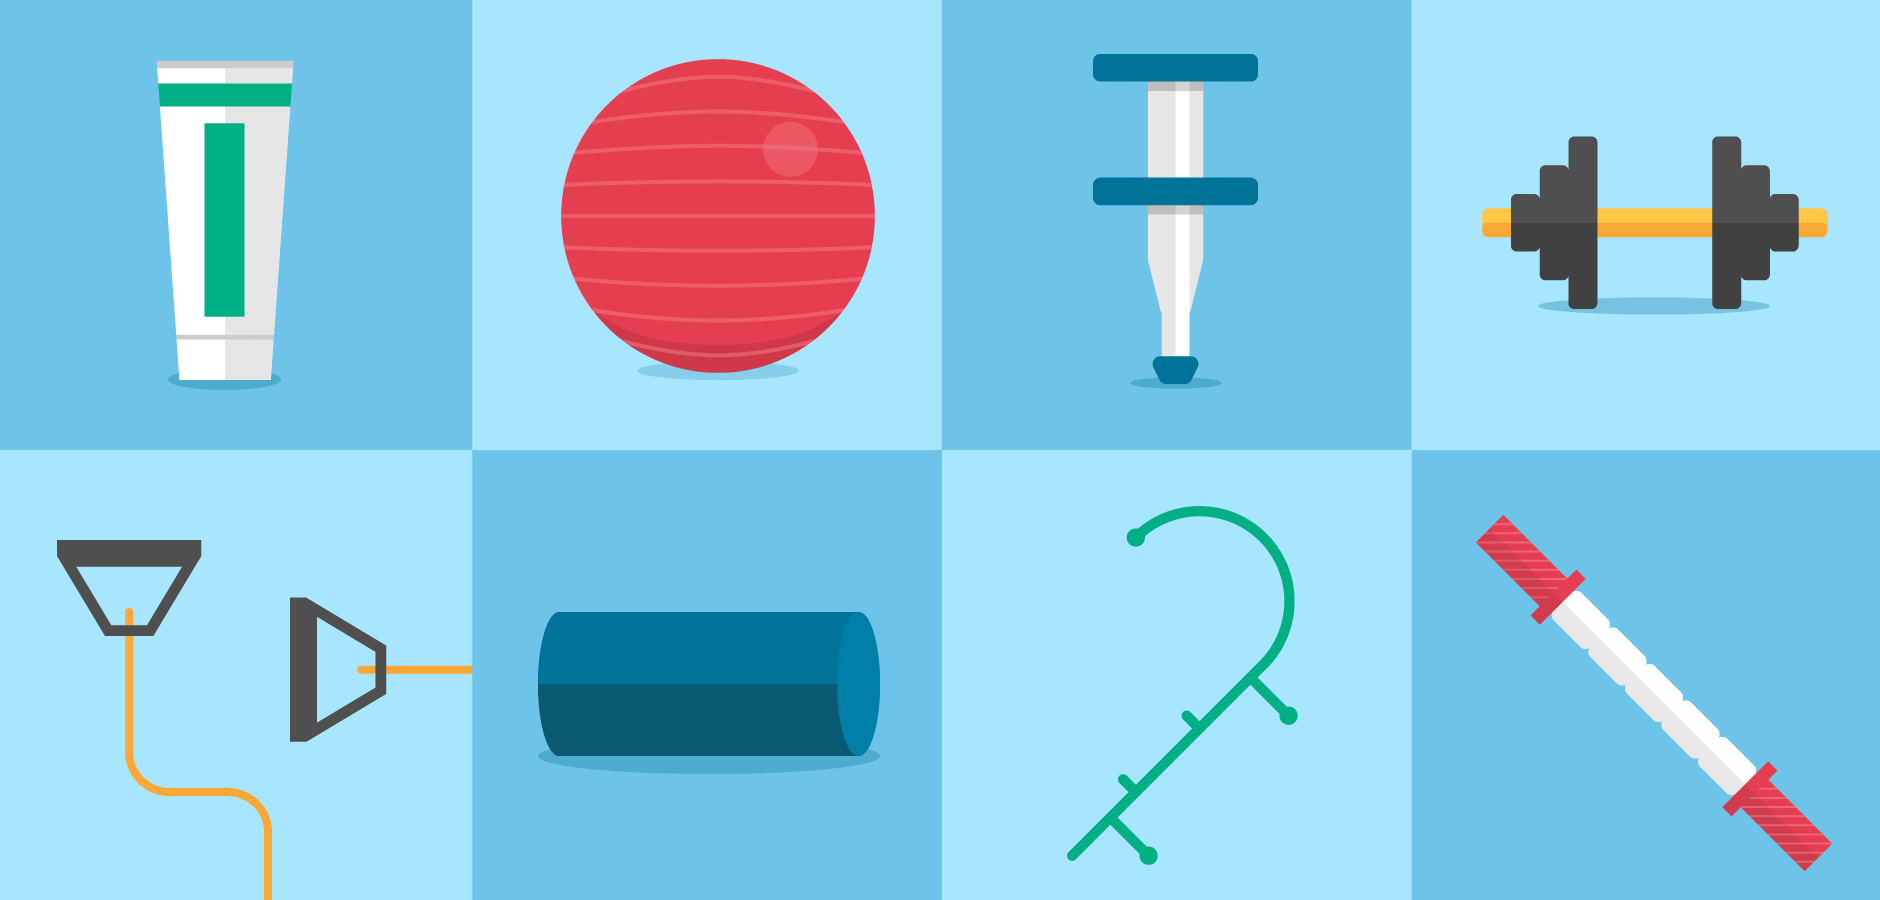 Equipment clipart physical therapy equipment. Save on products for